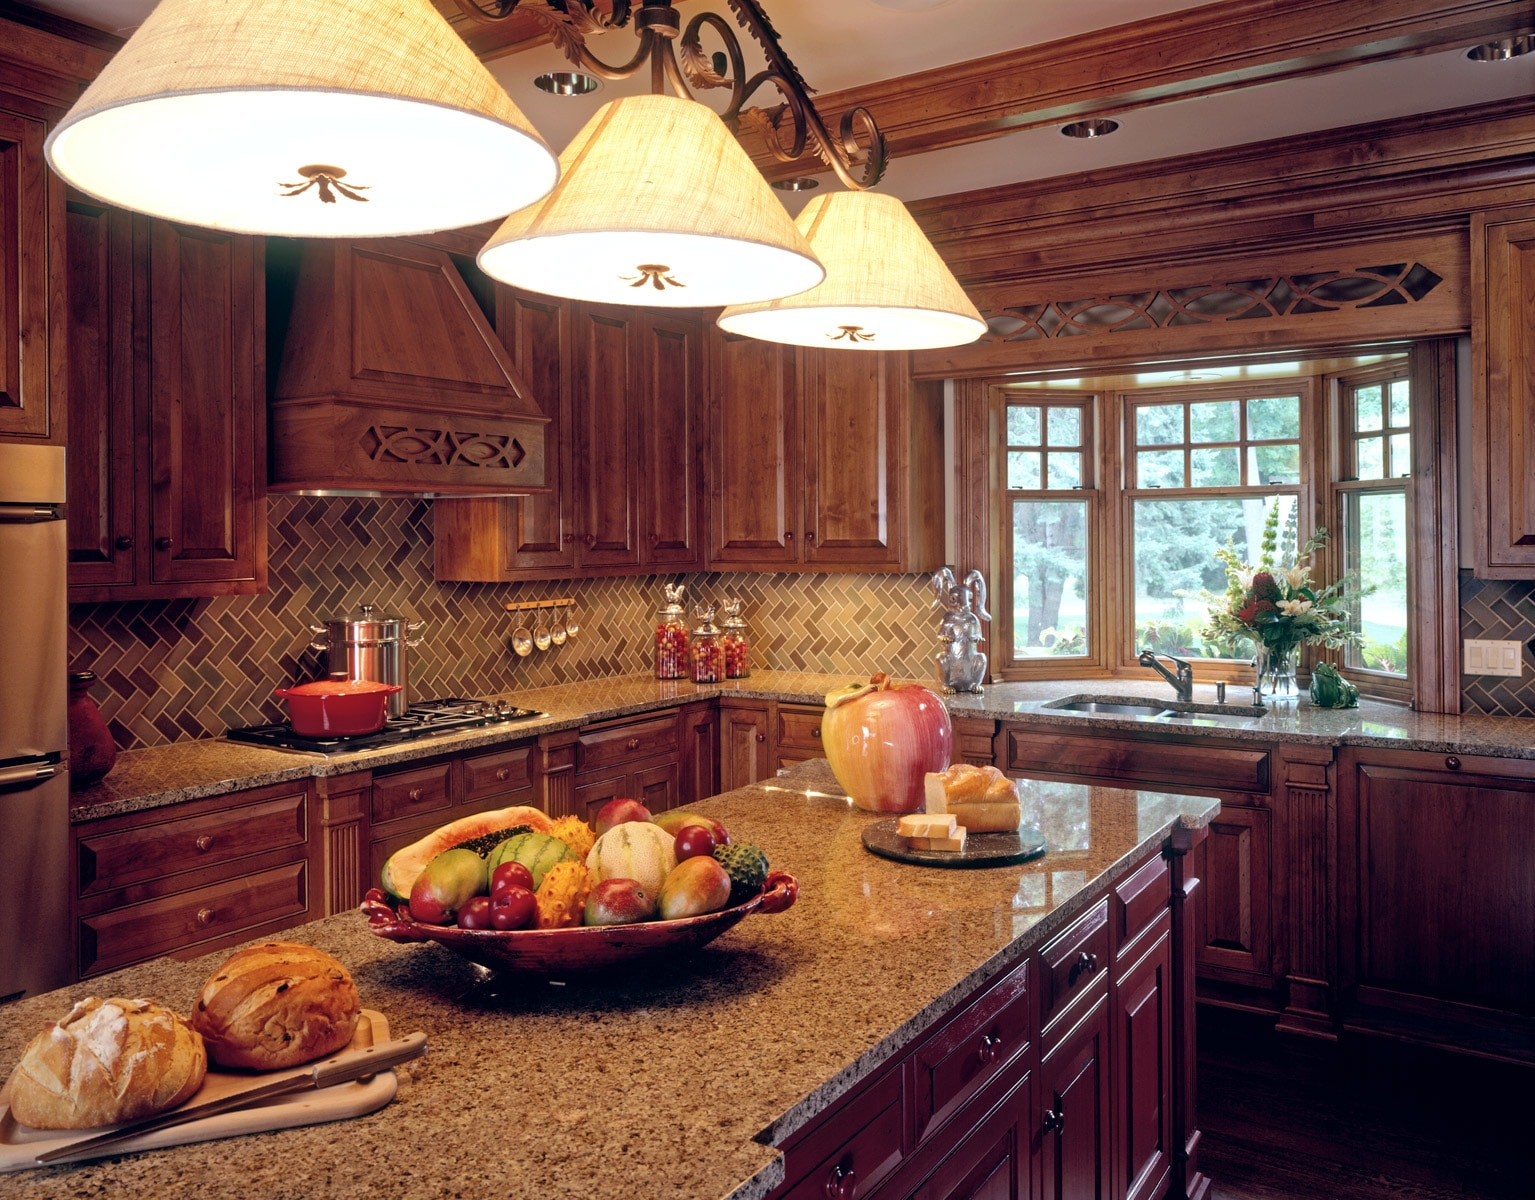 Private-Estate-Kitchen-Minneapolis-interior-designer.jpeg